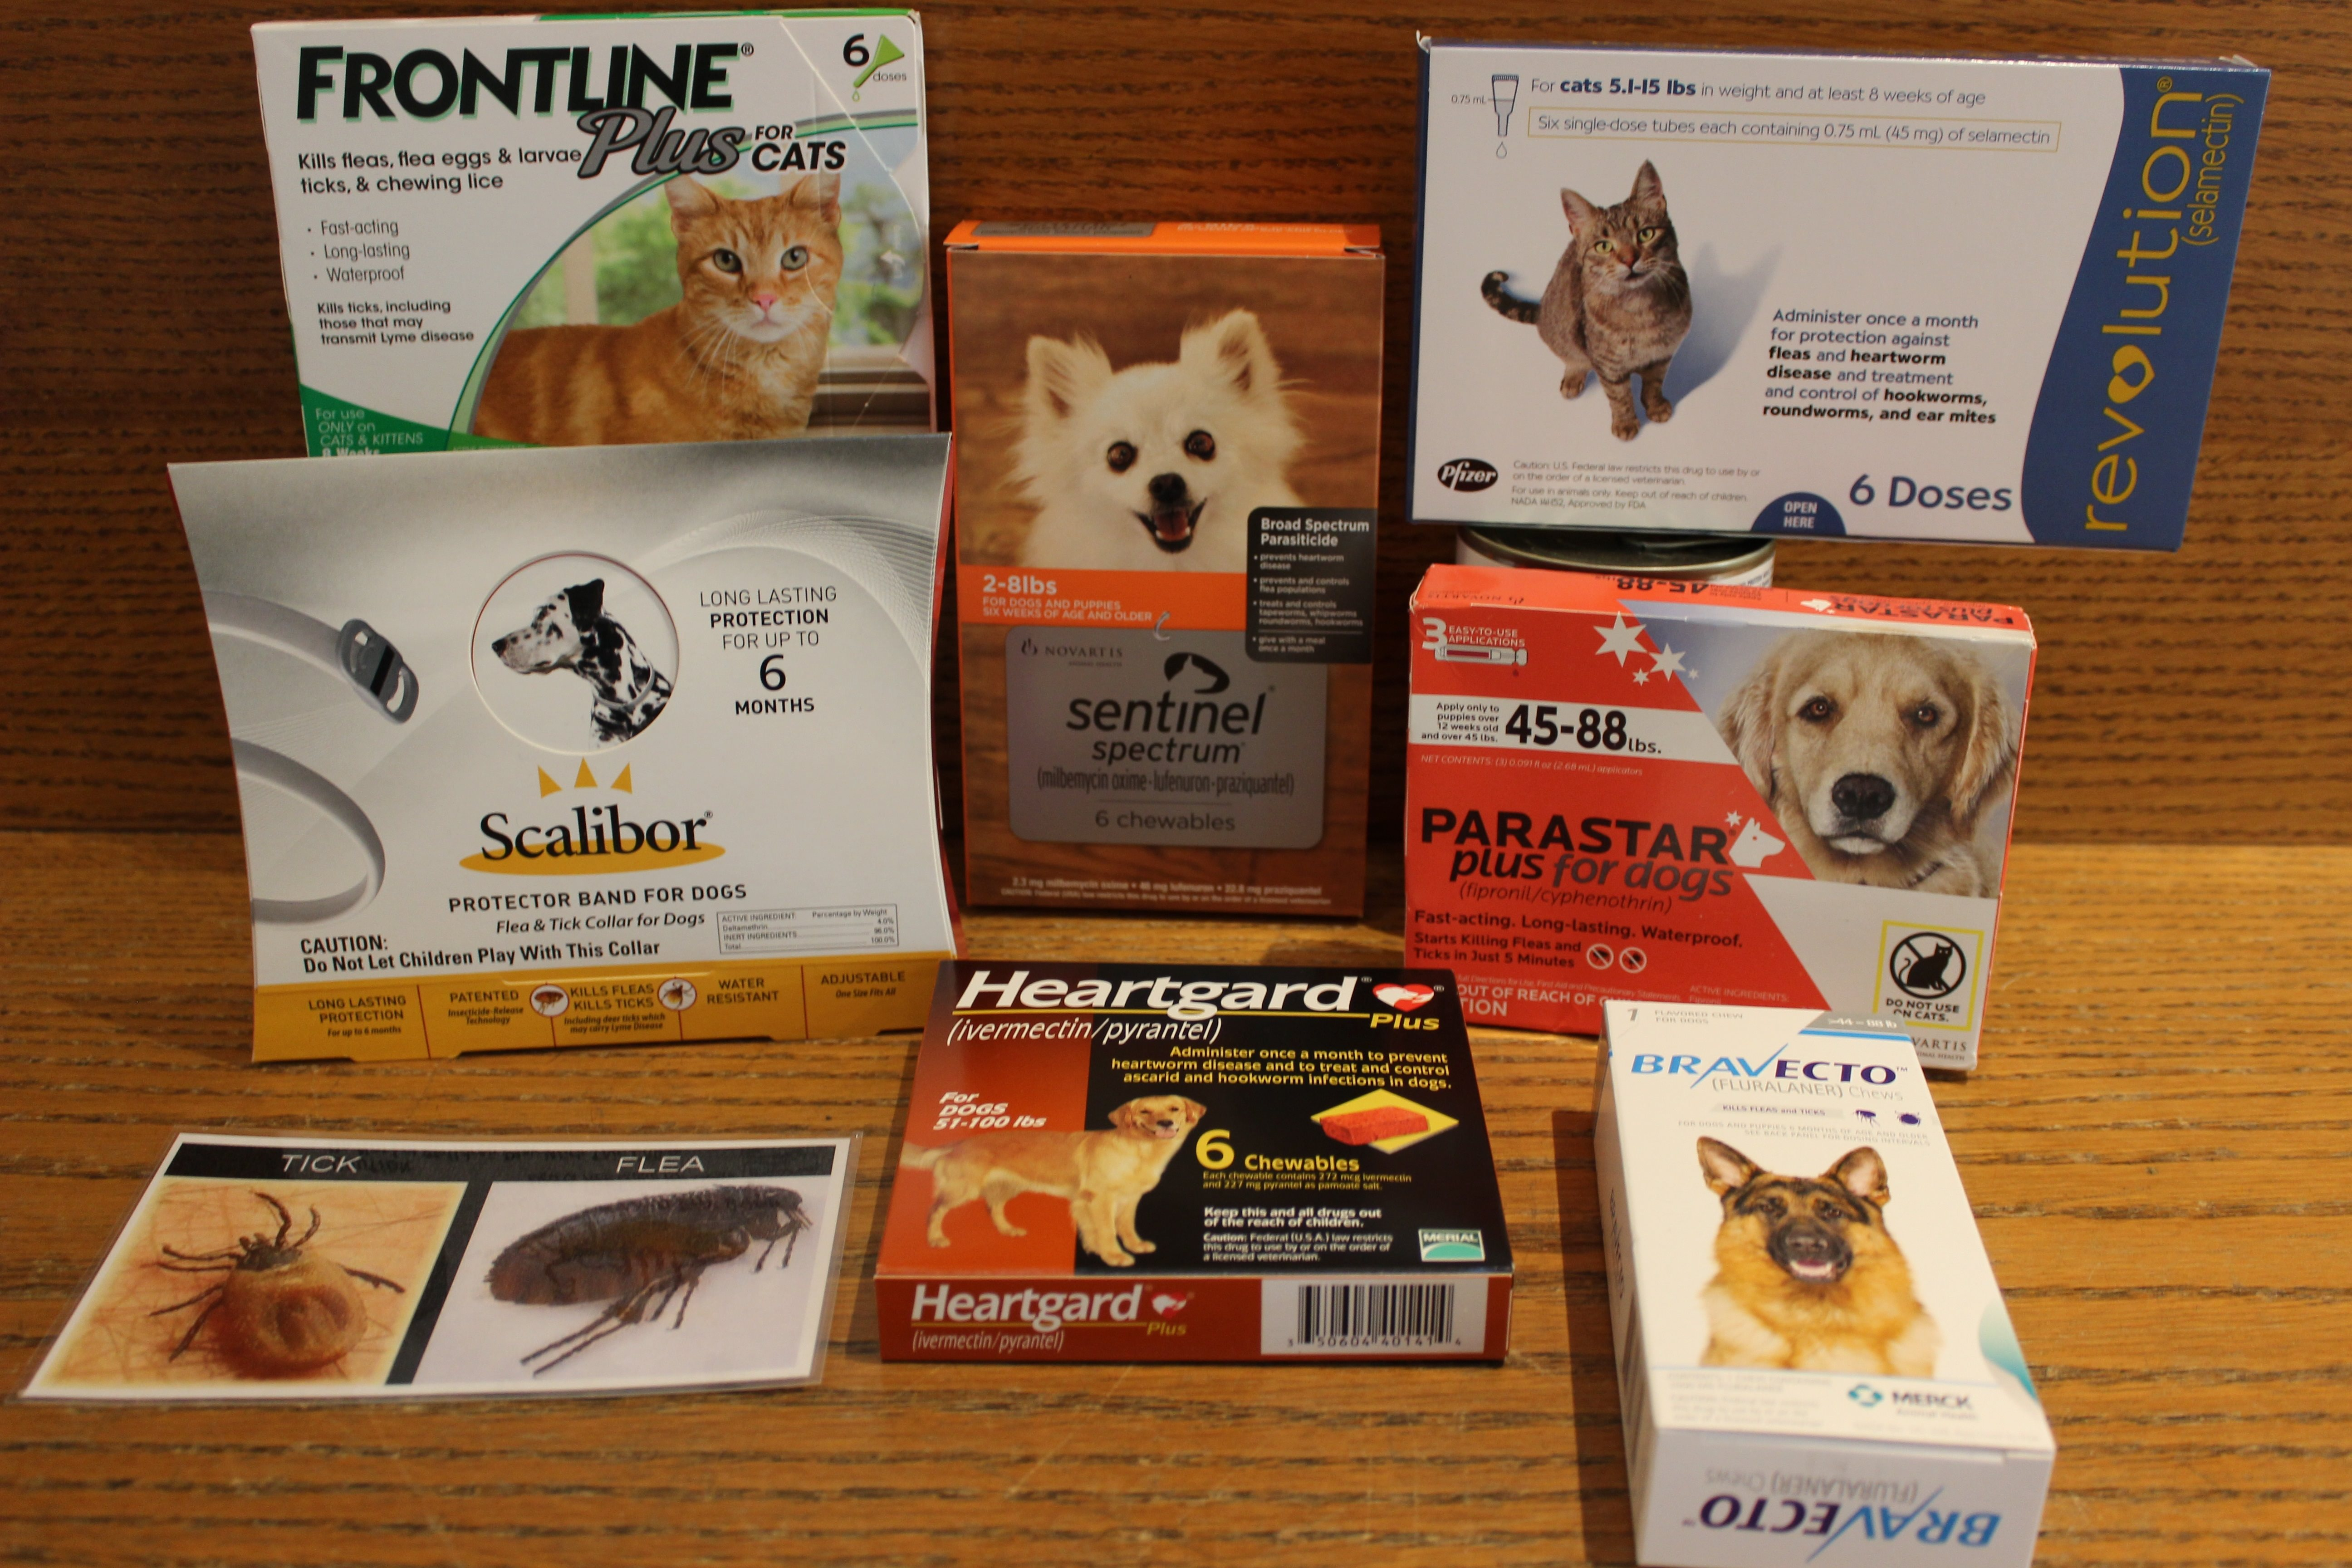 Why should I buy my pet's preventative products from my veterinarian?